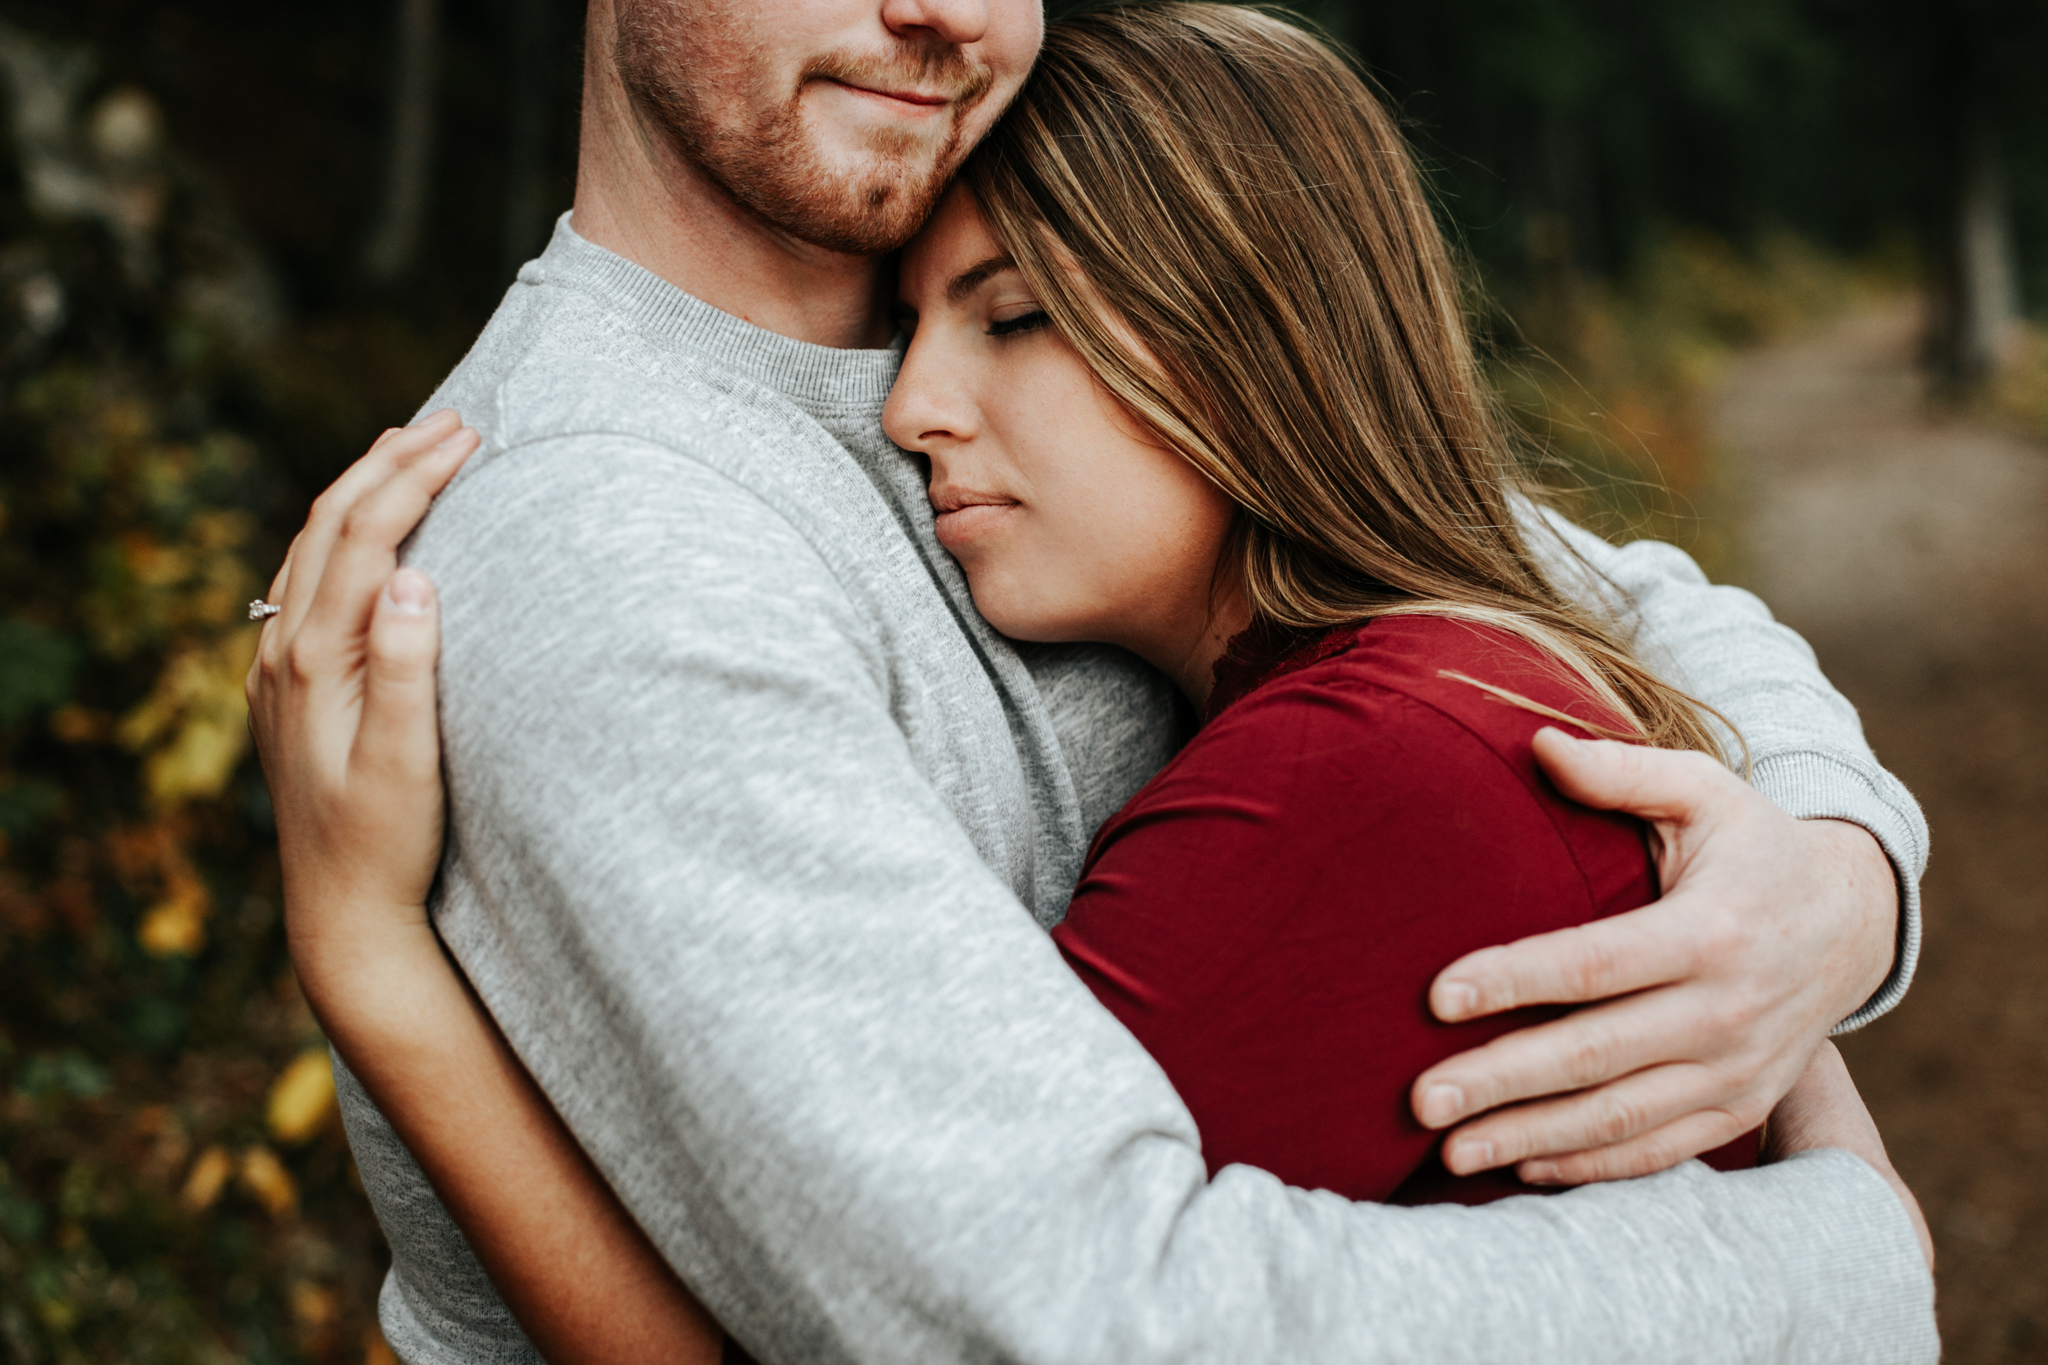 lethbridge-photographer-love-and-be-loved-photography-crowsnest-pass-engagement-andi-philip-picture-image-photo--44.jpg